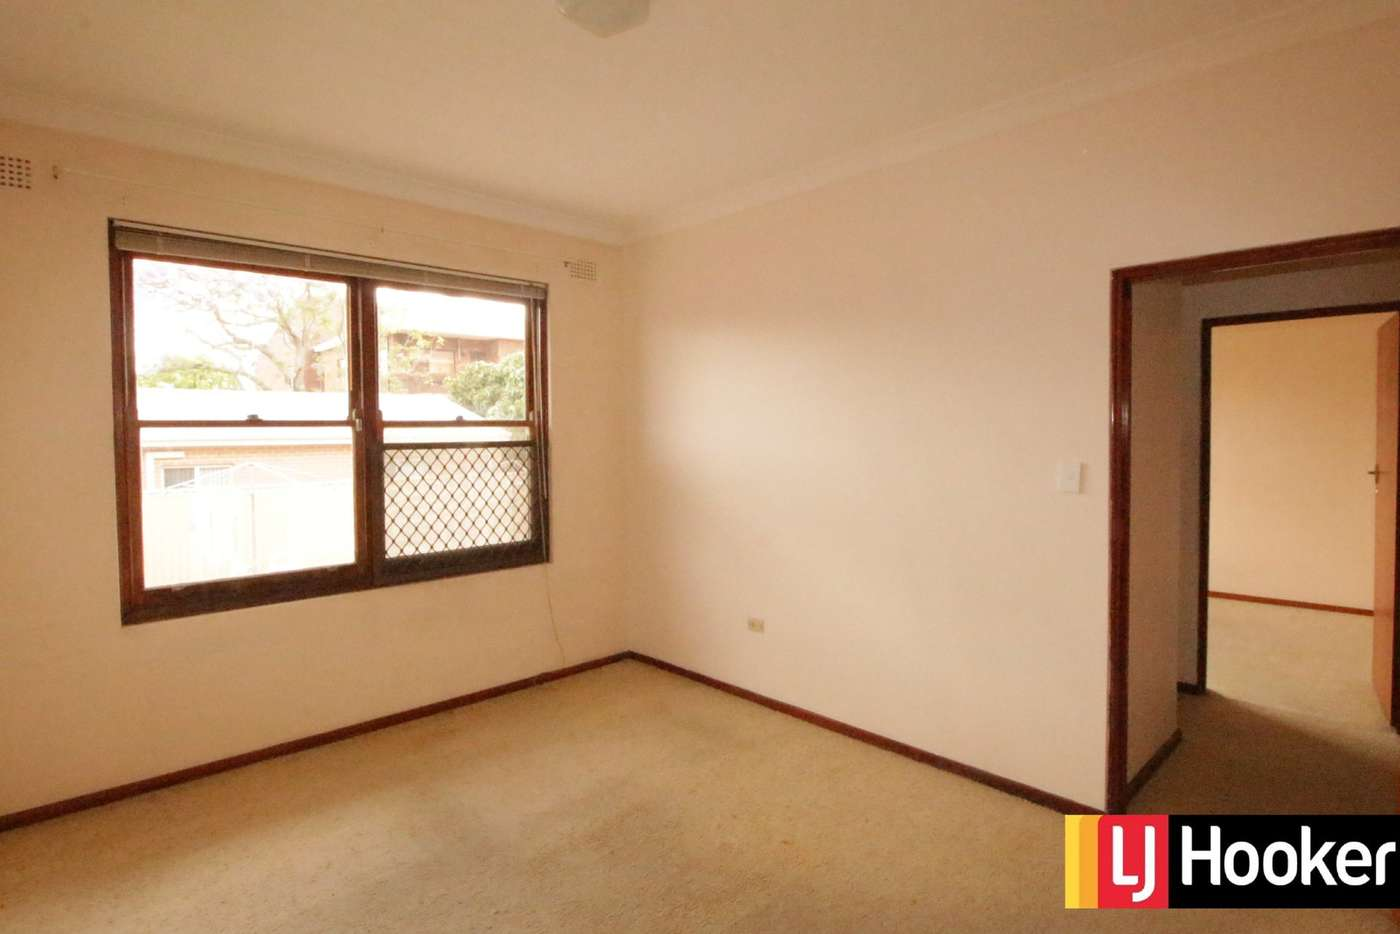 Seventh view of Homely unit listing, 33 Bruce Street, Brighton-le-sands NSW 2216